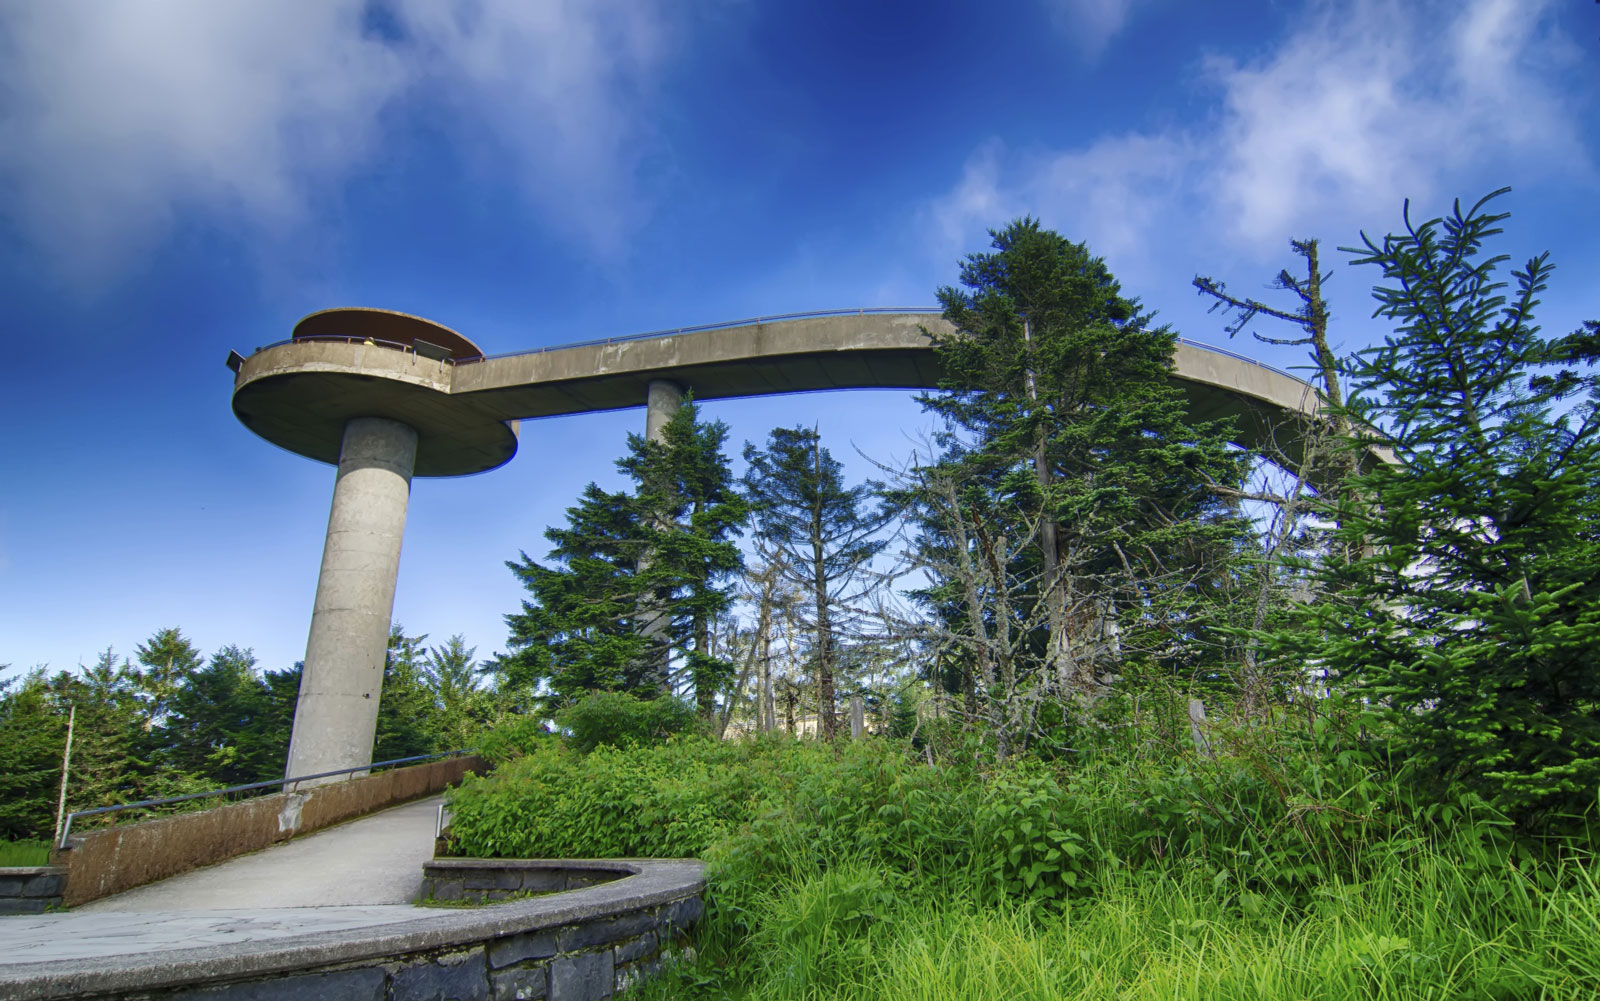 Clingmans Dome tower in Great Smoky Mountains National Park, TN